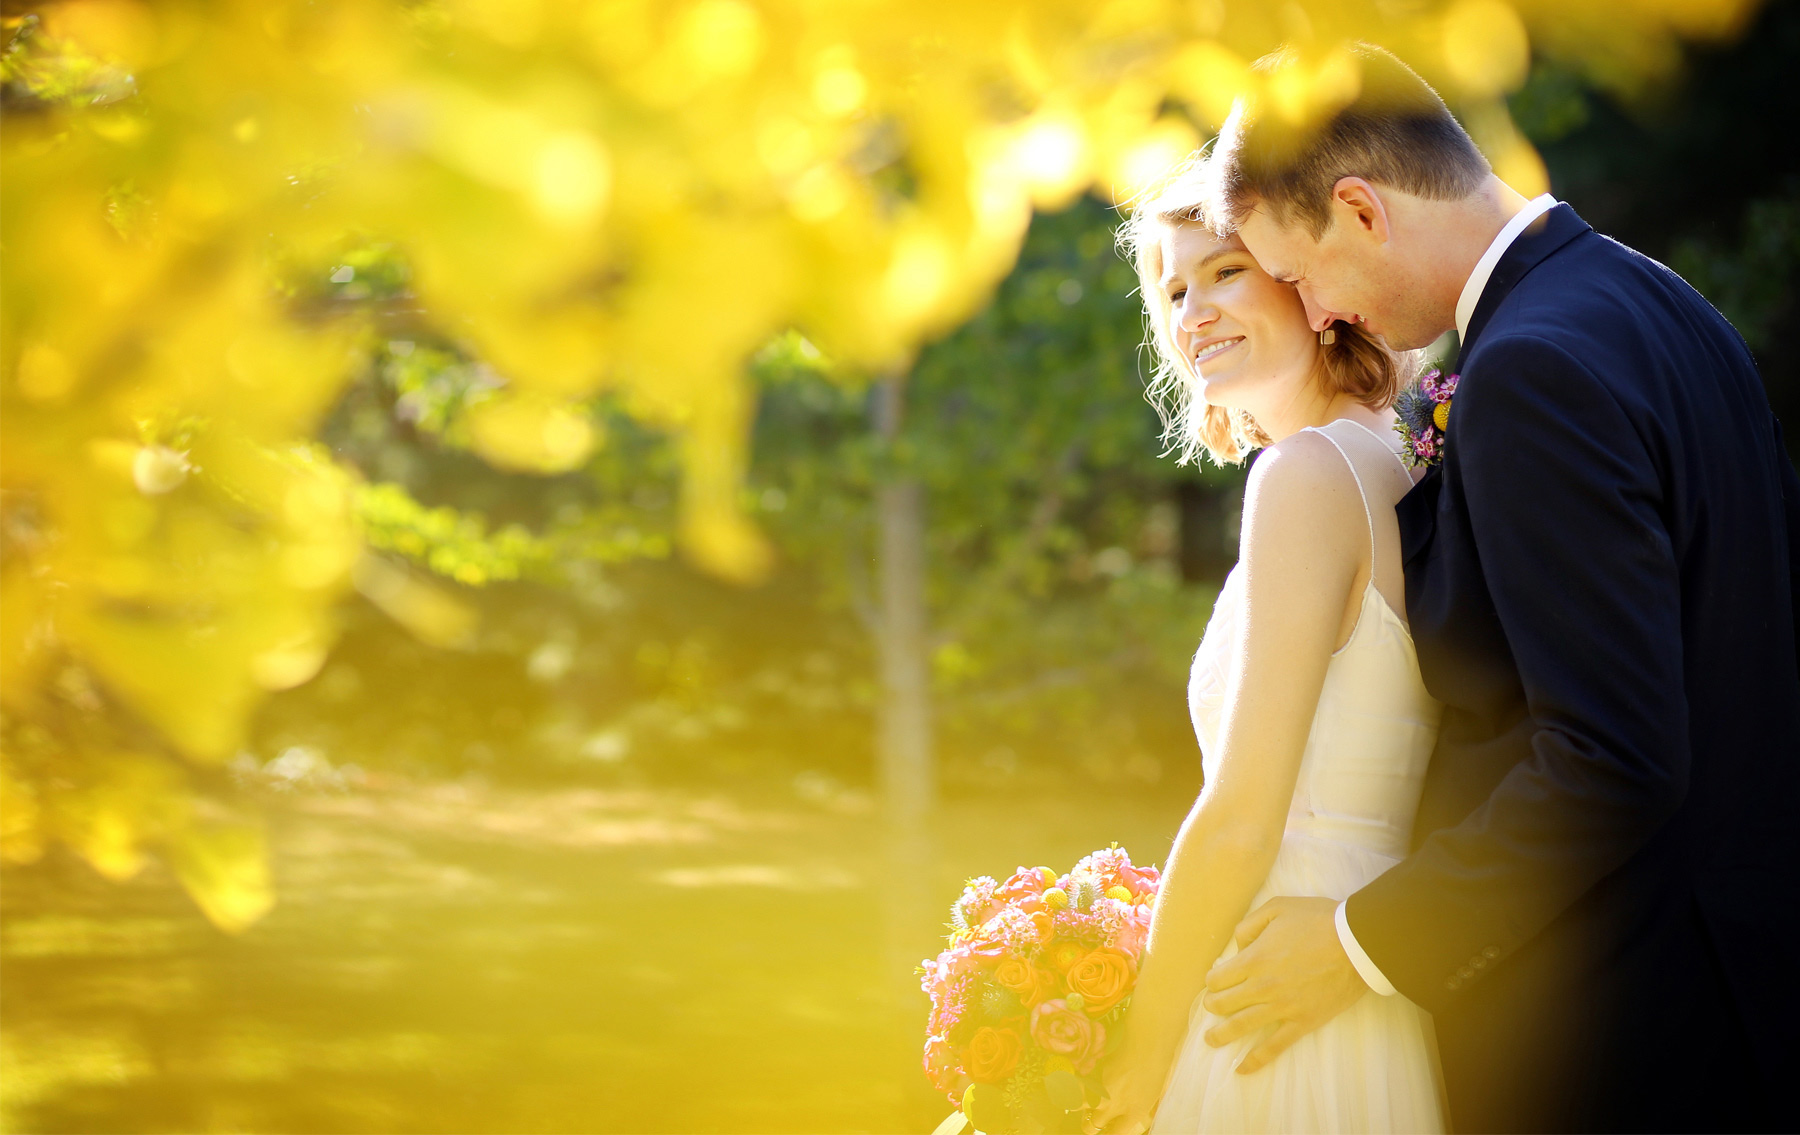 05-Minneapolis-Minnesota-Wedding-Photography-by-Vick-Photography-Fall-Colors-Autumn-Leaves-First-Look-Madeline-&-Matt.jpg